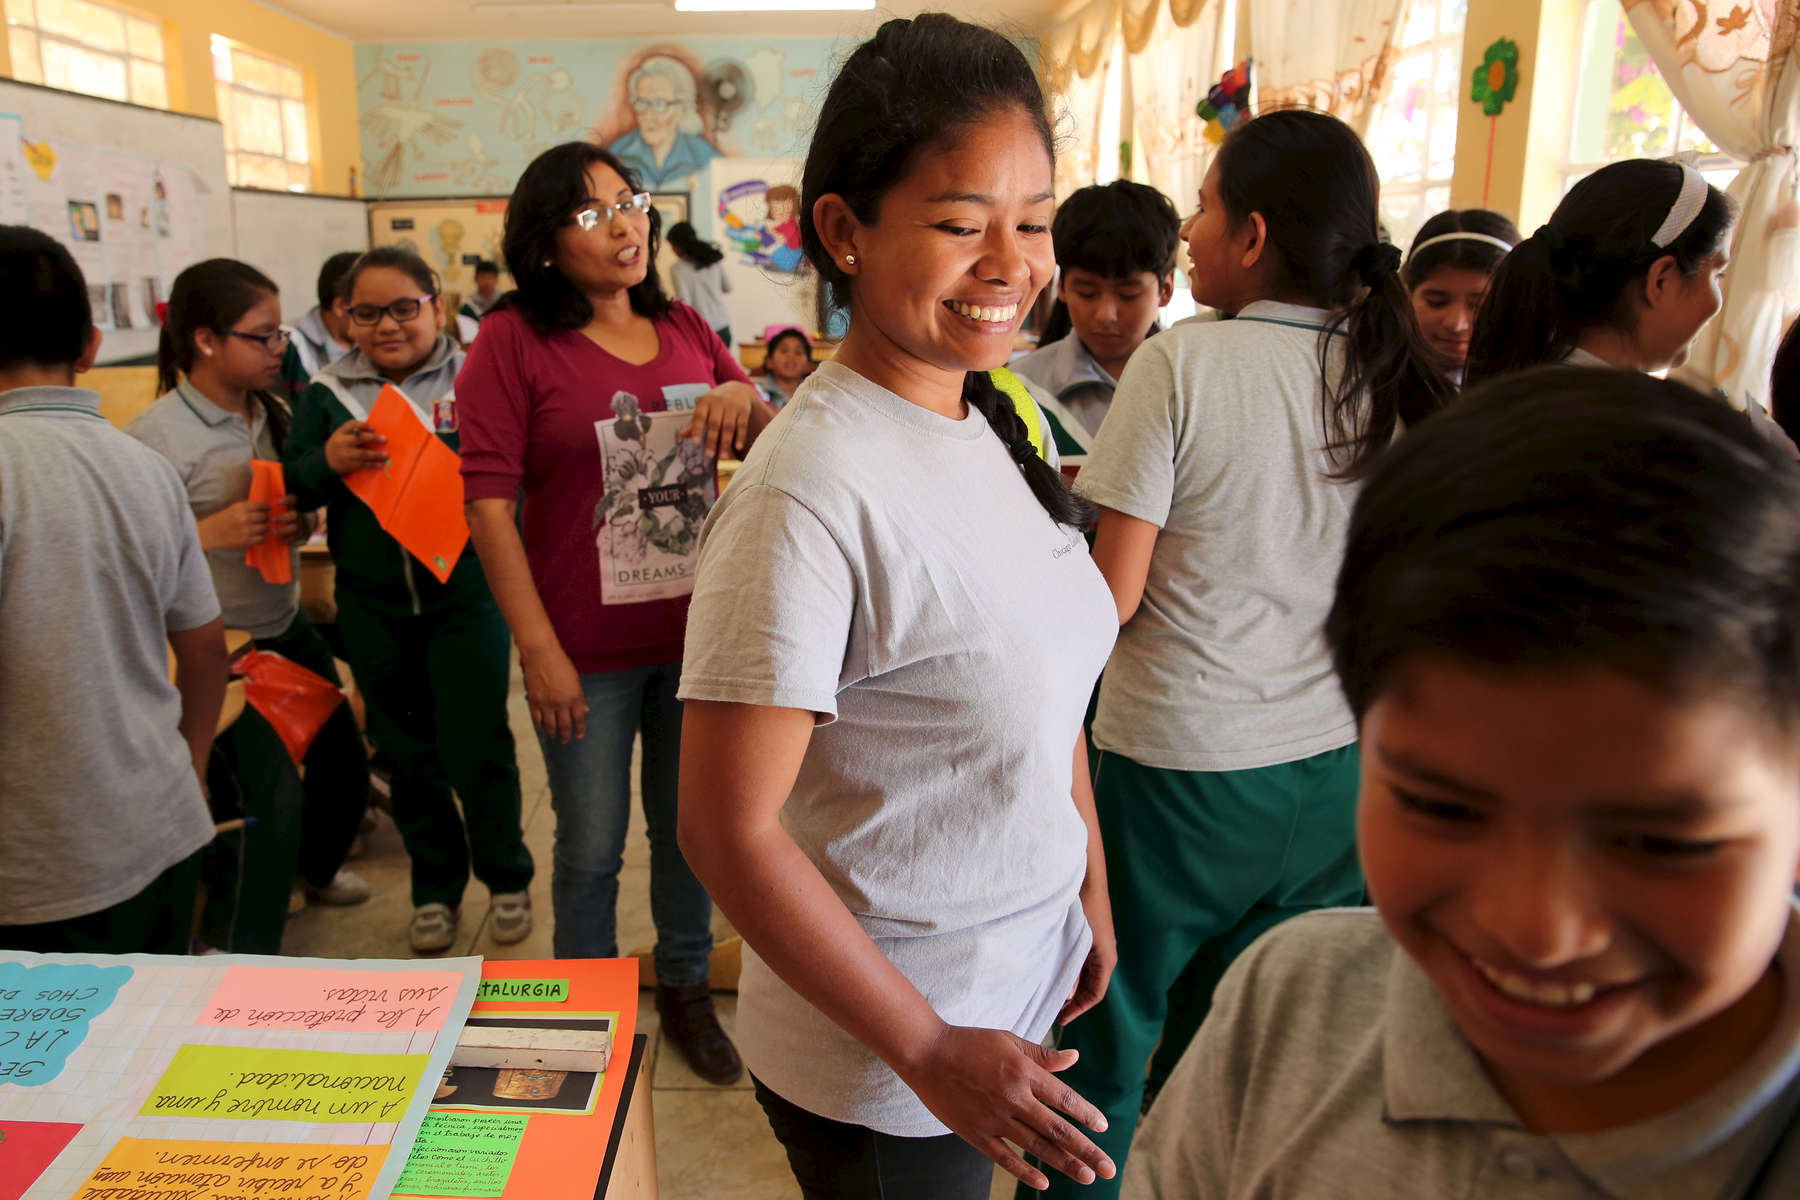 Students are greeted by Miluska Elguera as they file into their classroom at Ricardo Palma School in San Juan de Marcona, Peru. The students are part of an outreach program with Punta San Juan where Elguera comes by occasionally to educate them and spread awareness about the reserve.